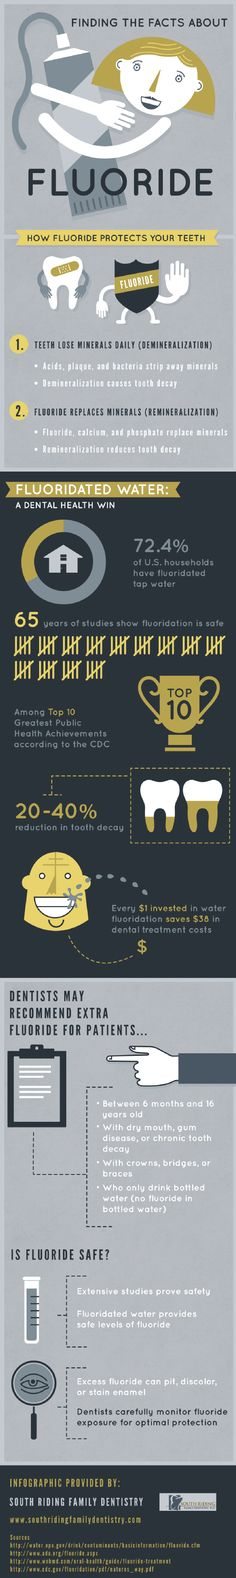 Latest dental implants new dental implants,minor tooth decay dental information,best way to take care of your teeth dentist location. Dental Hygiene School, Dental Humor, Oral Hygiene, Children's Dental, Smile Dental, Dental World, Dental Life, Dental Health, Infographic